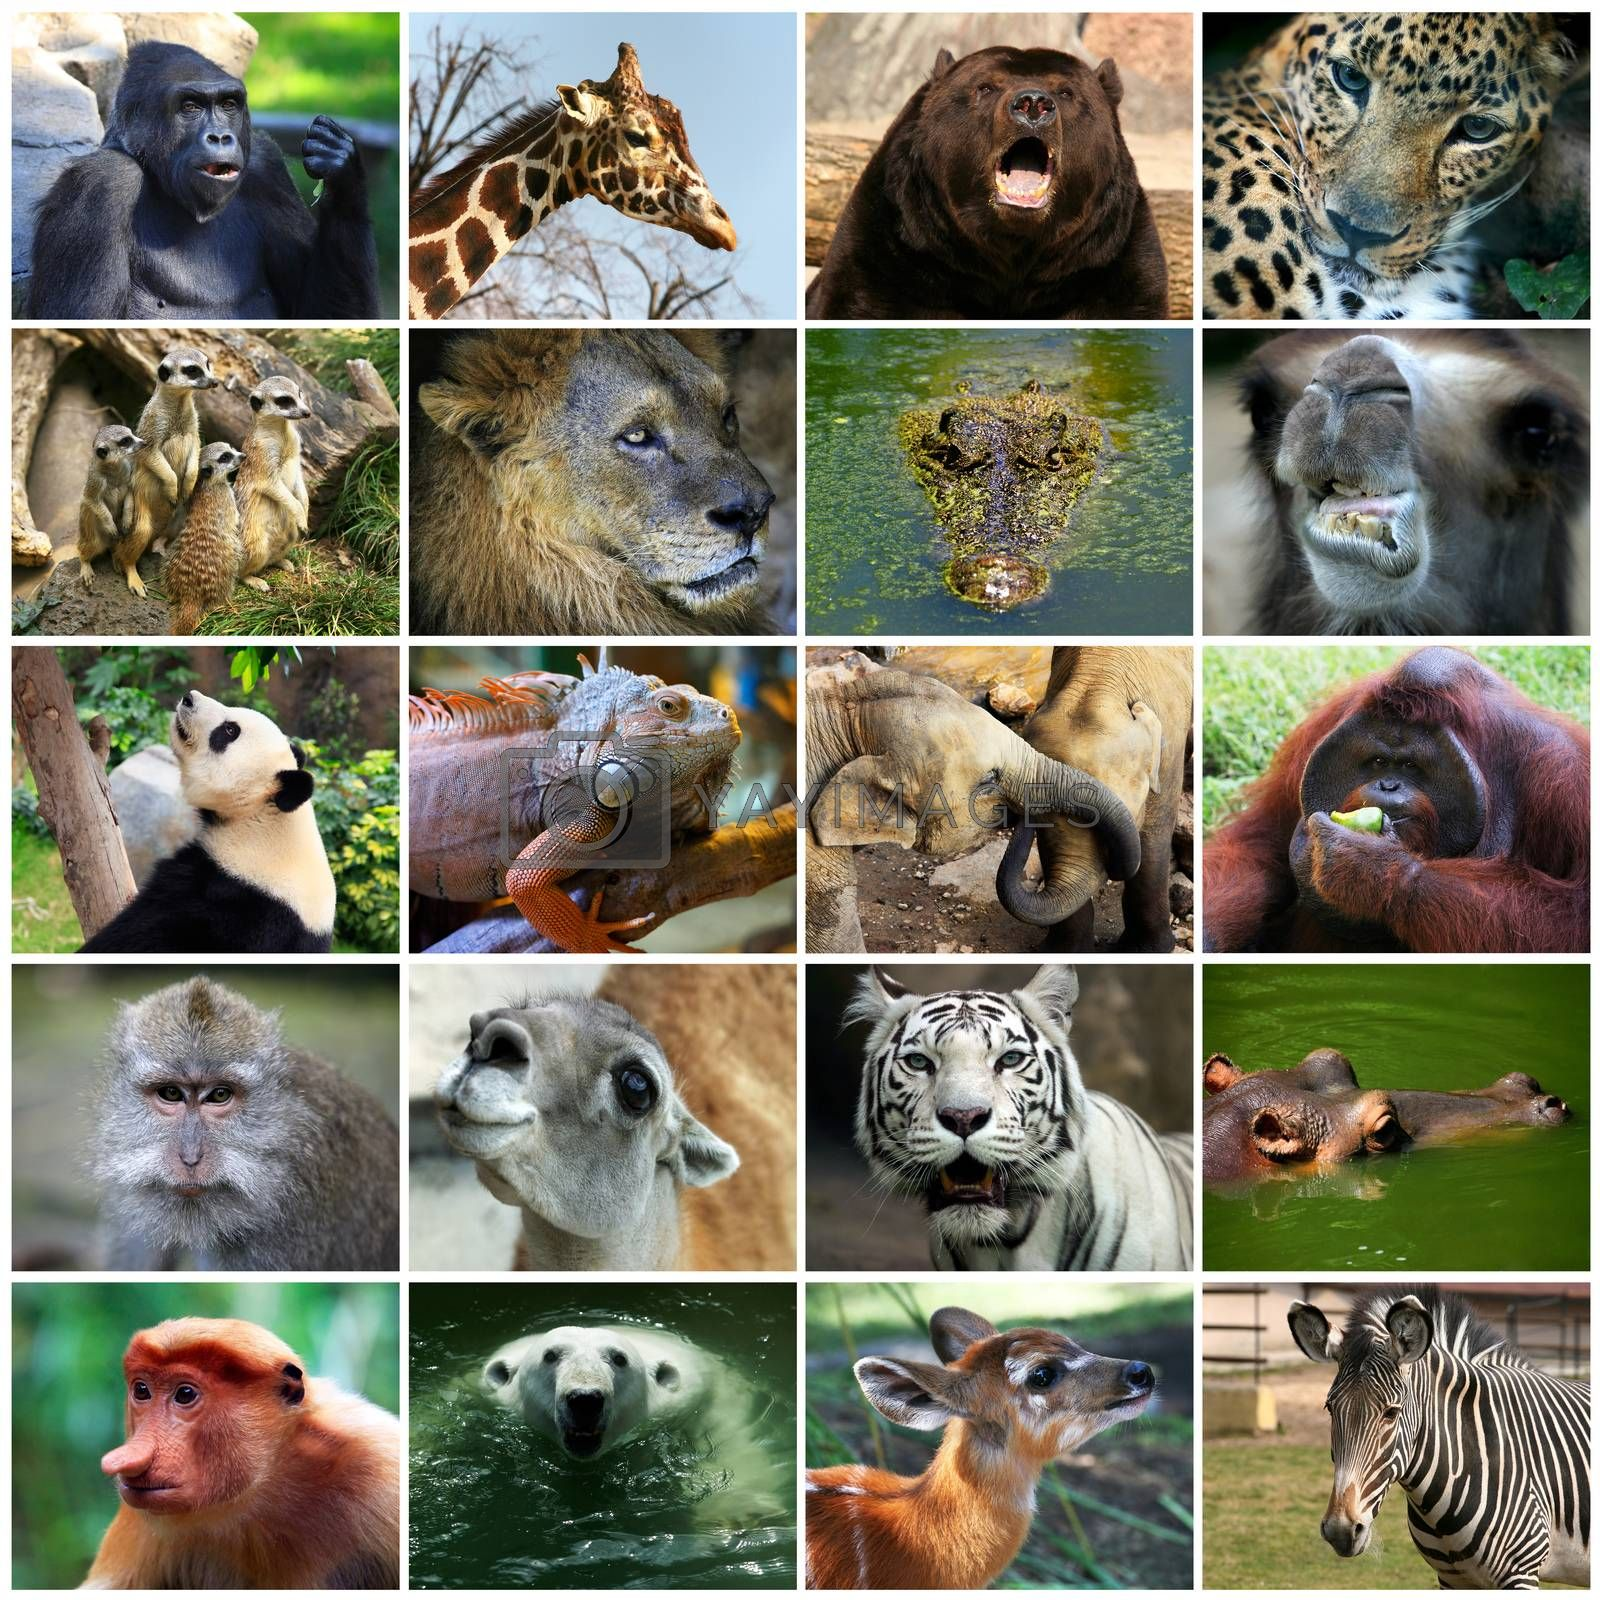 Collage with different animal faces.